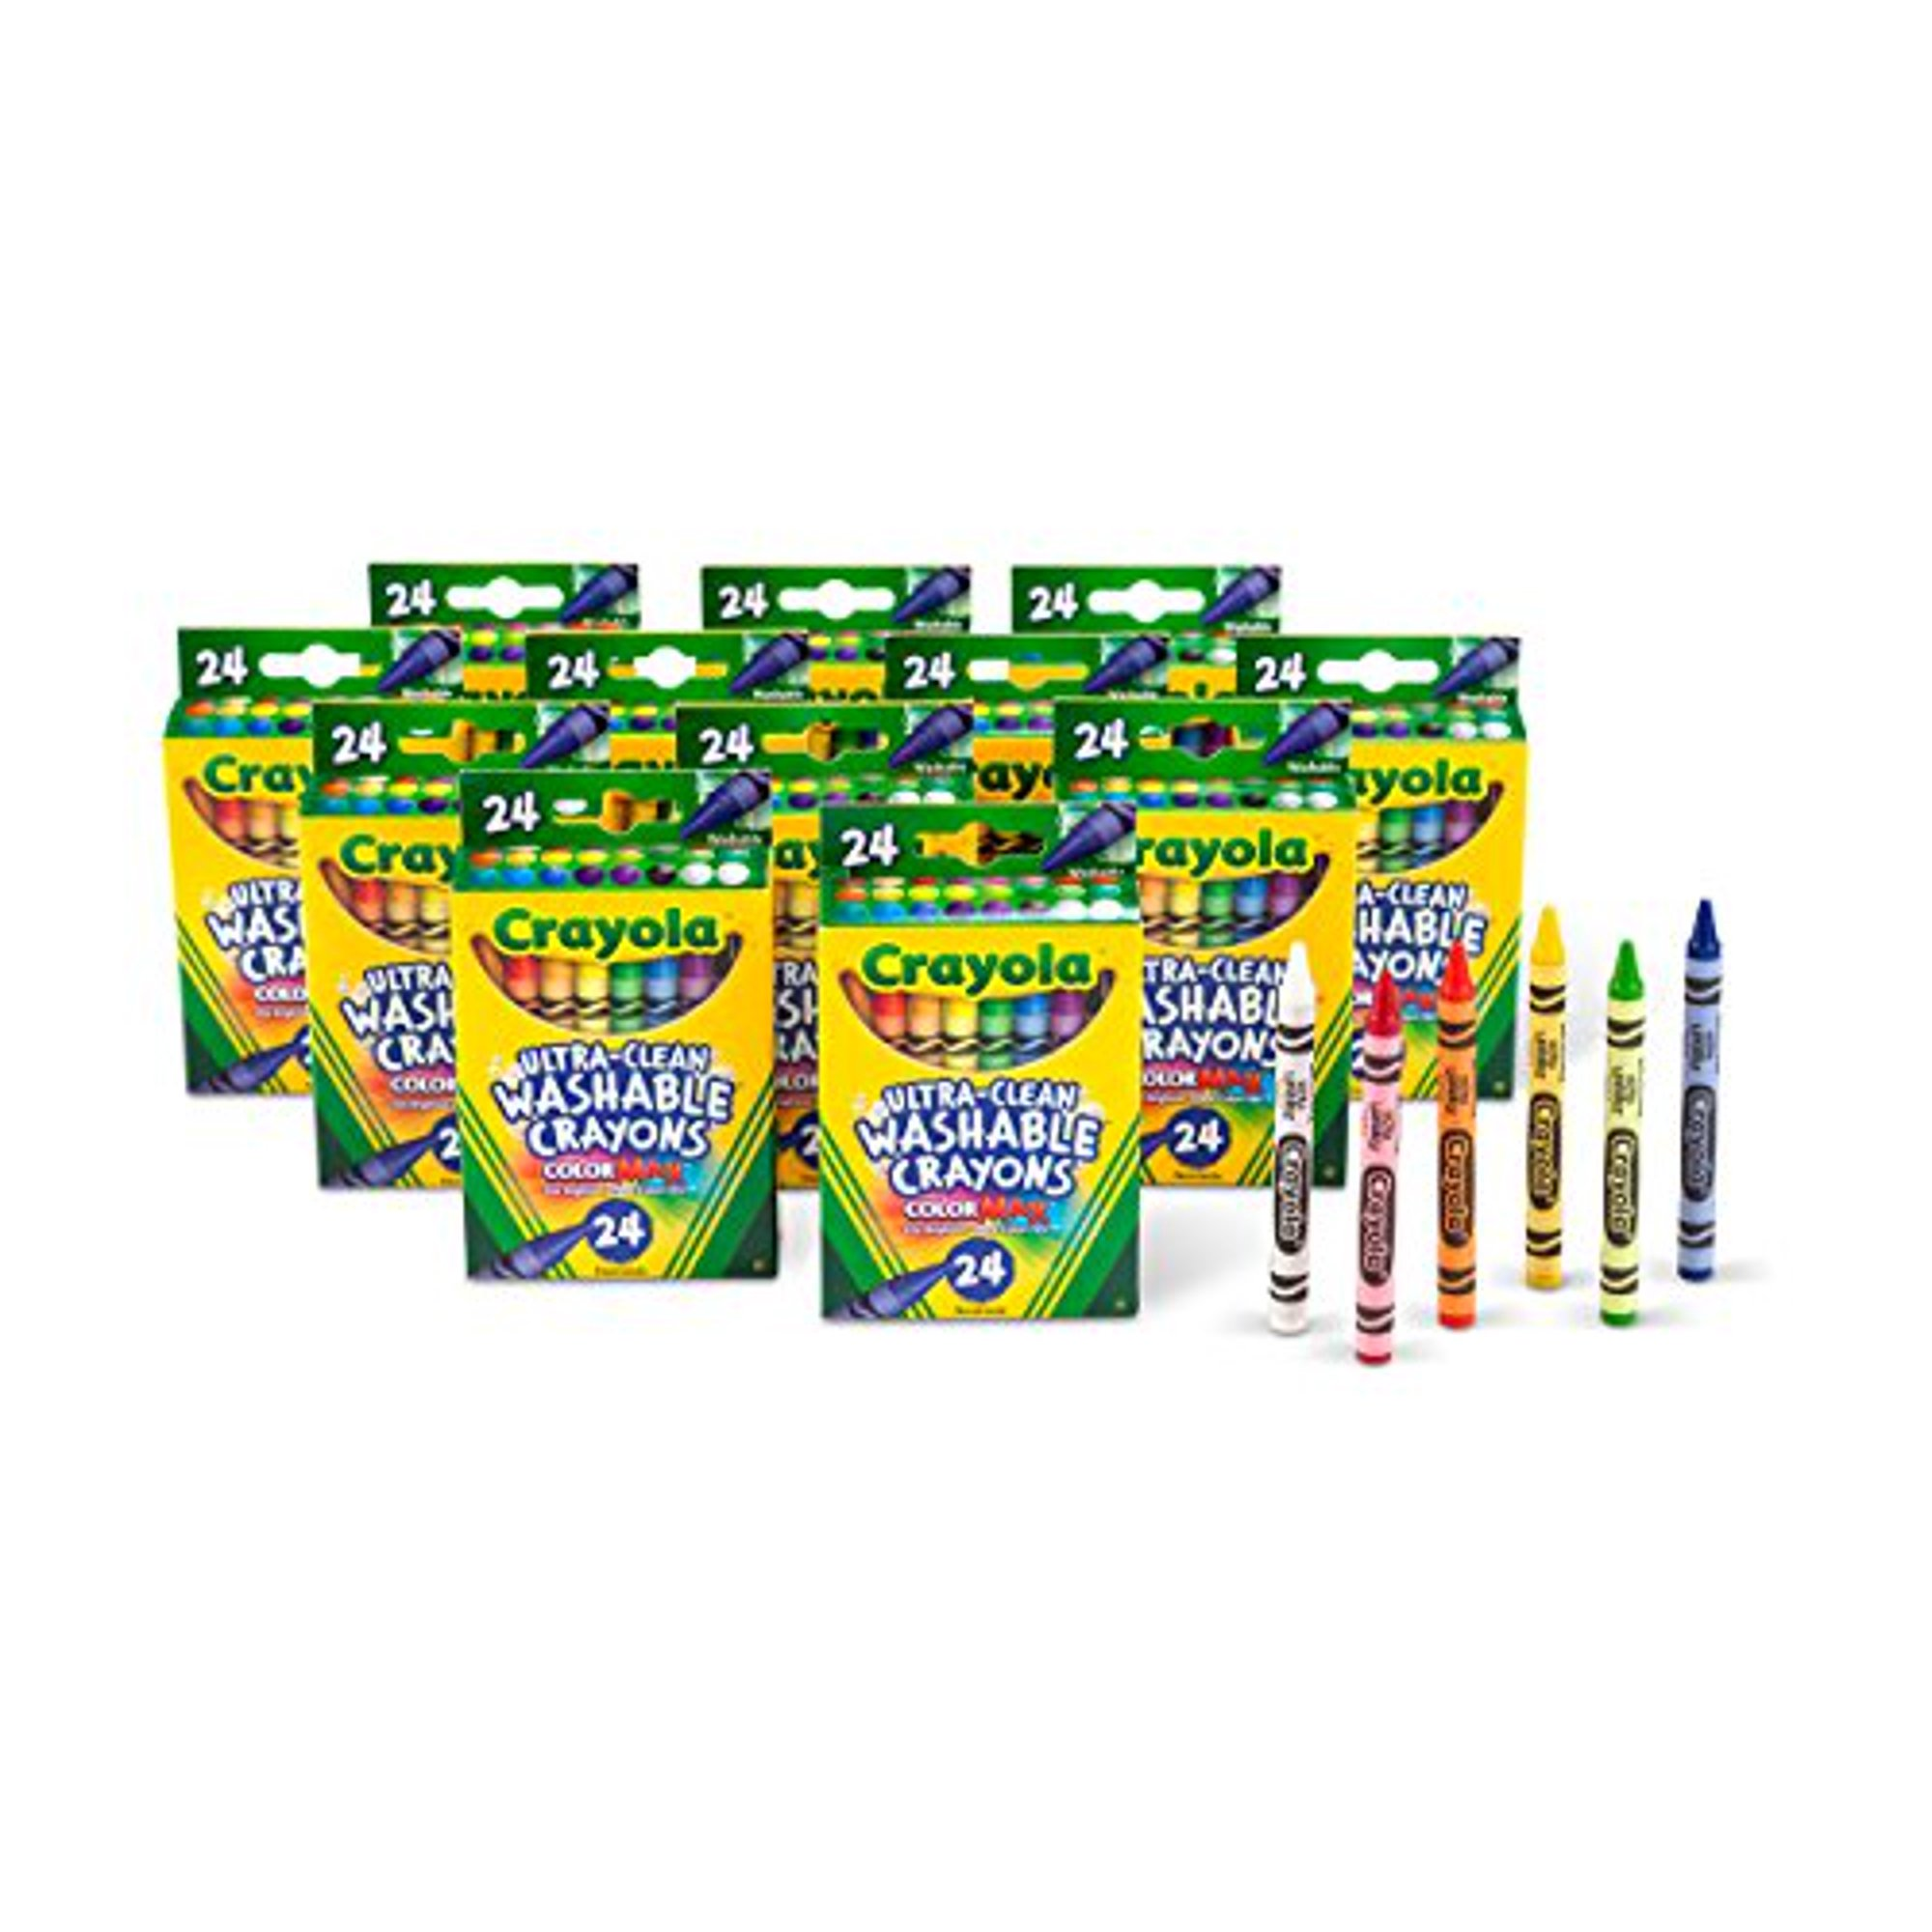 Crayola Ultra Clean Washable Crayons, Bulk Set, 12 Packs Of 24 Count